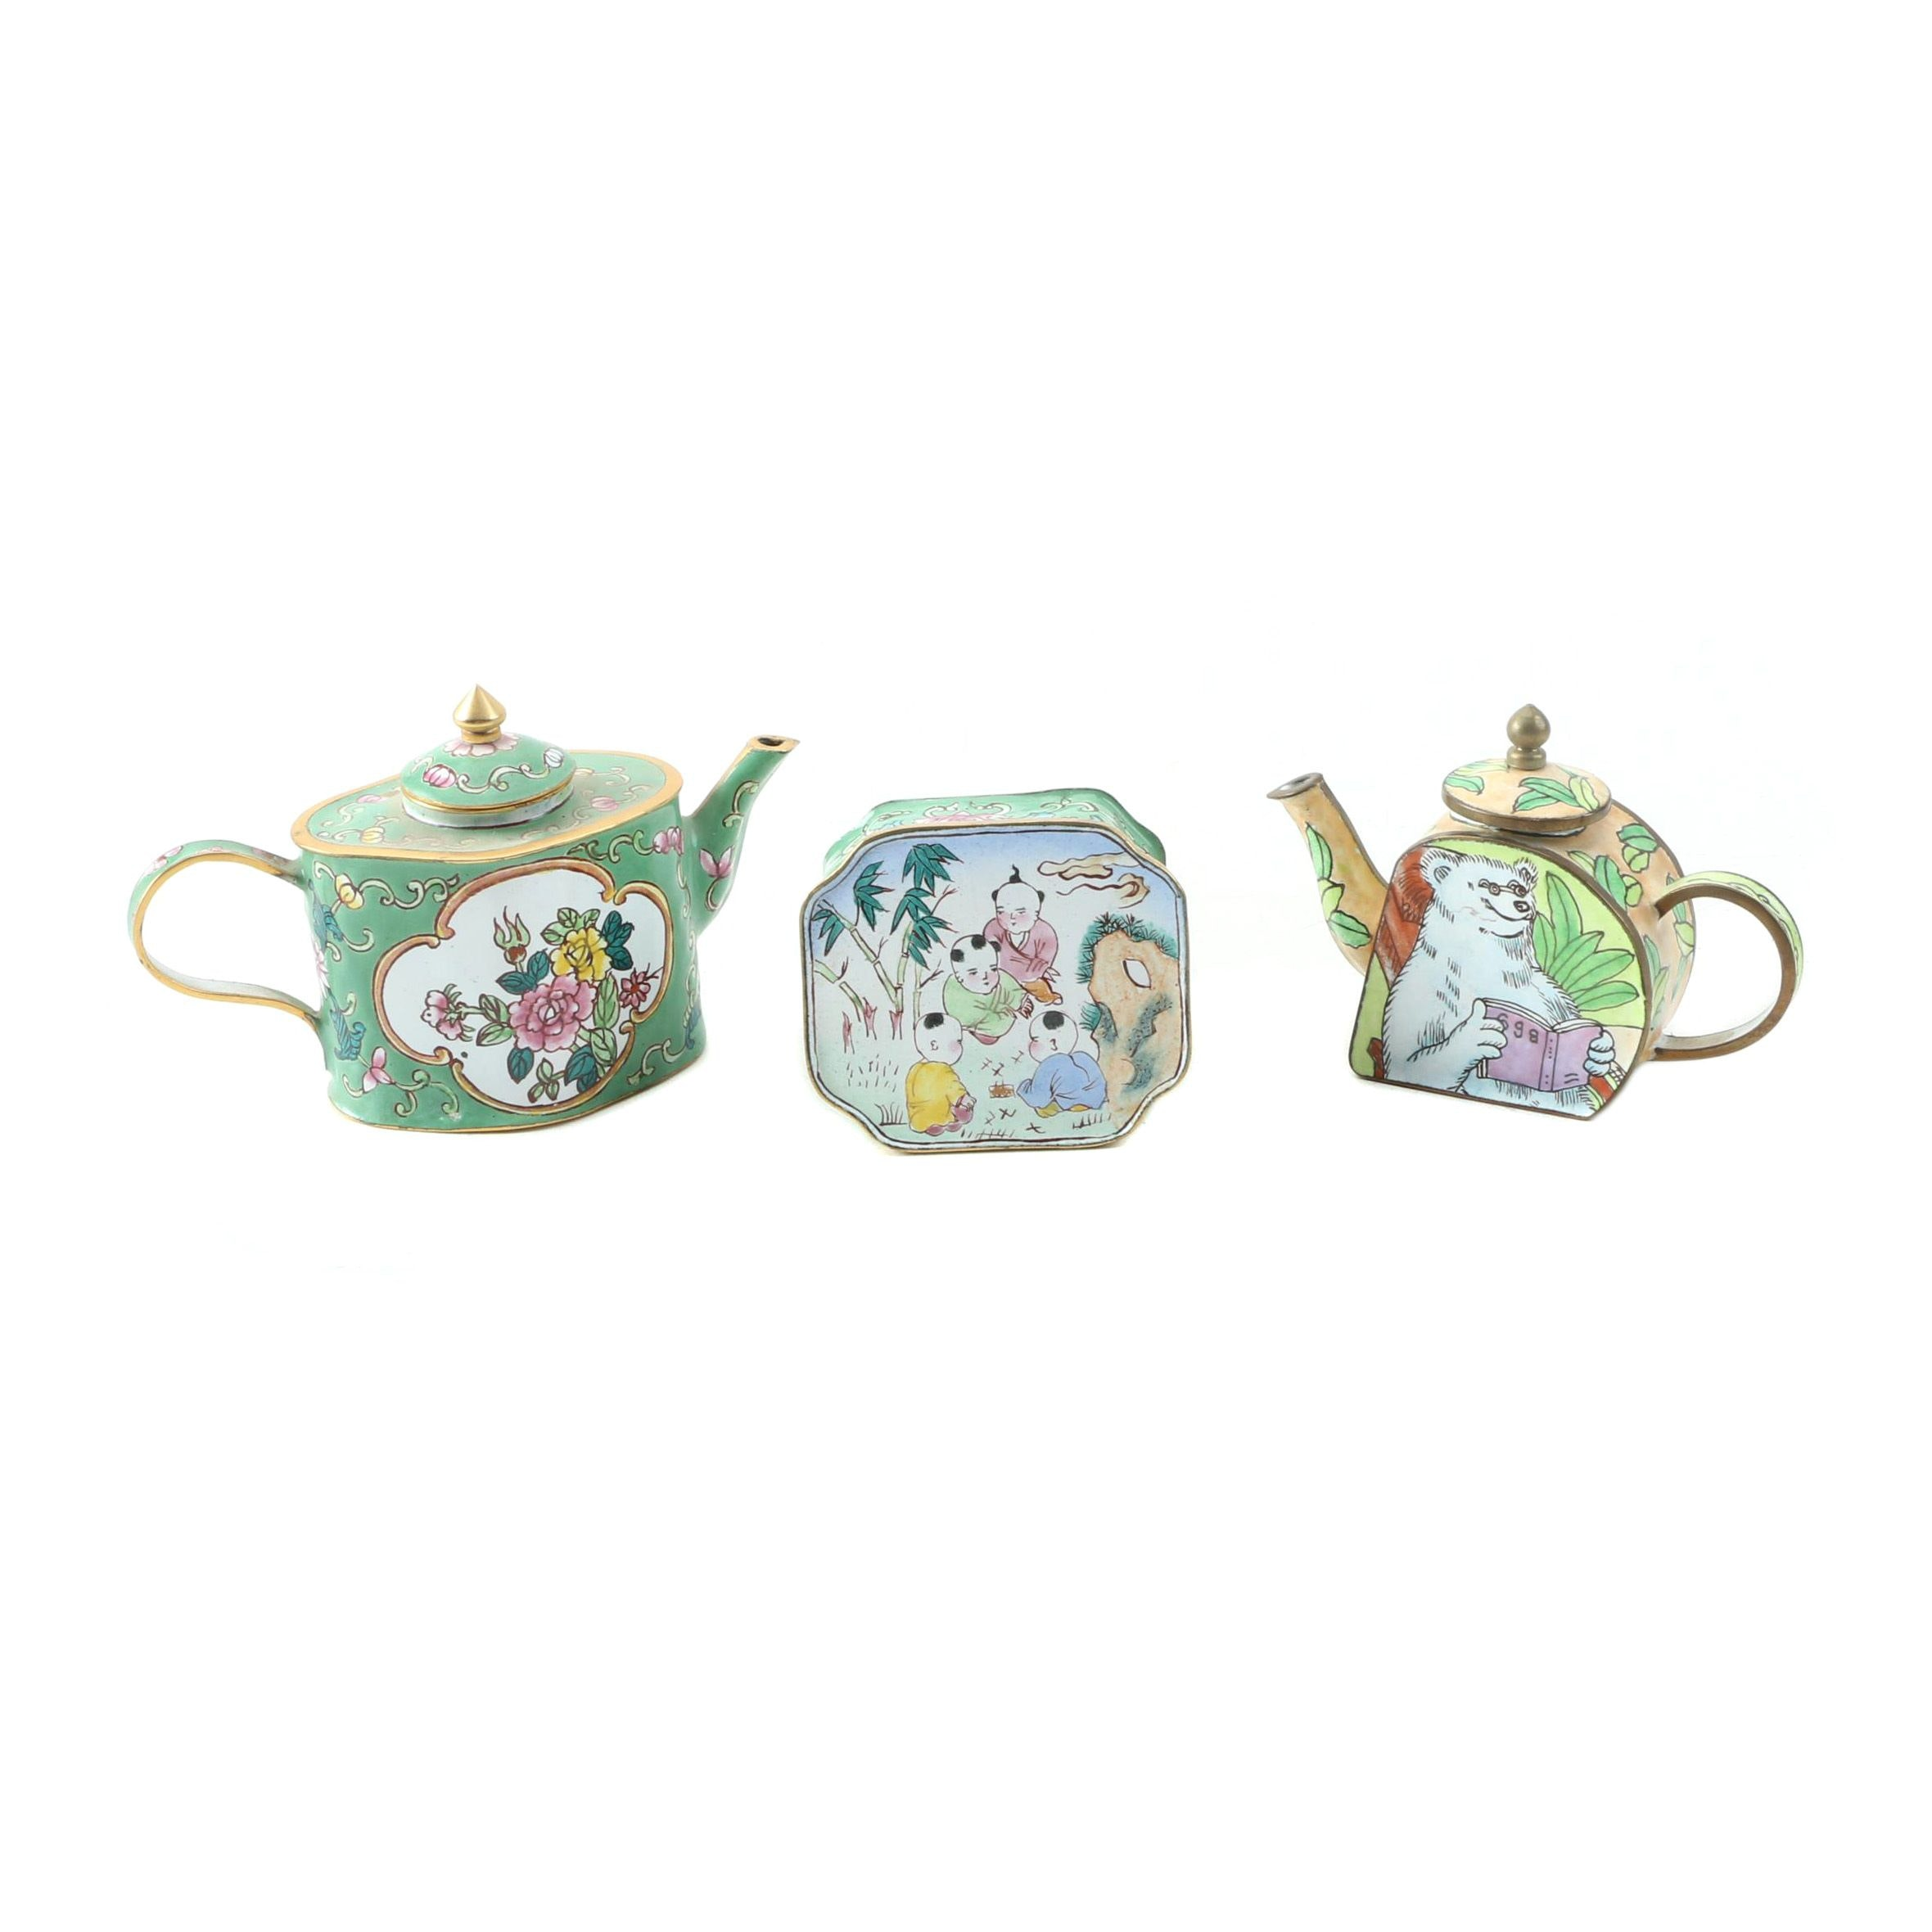 Miniature Chinese Enamel Teapots and Trinket Box